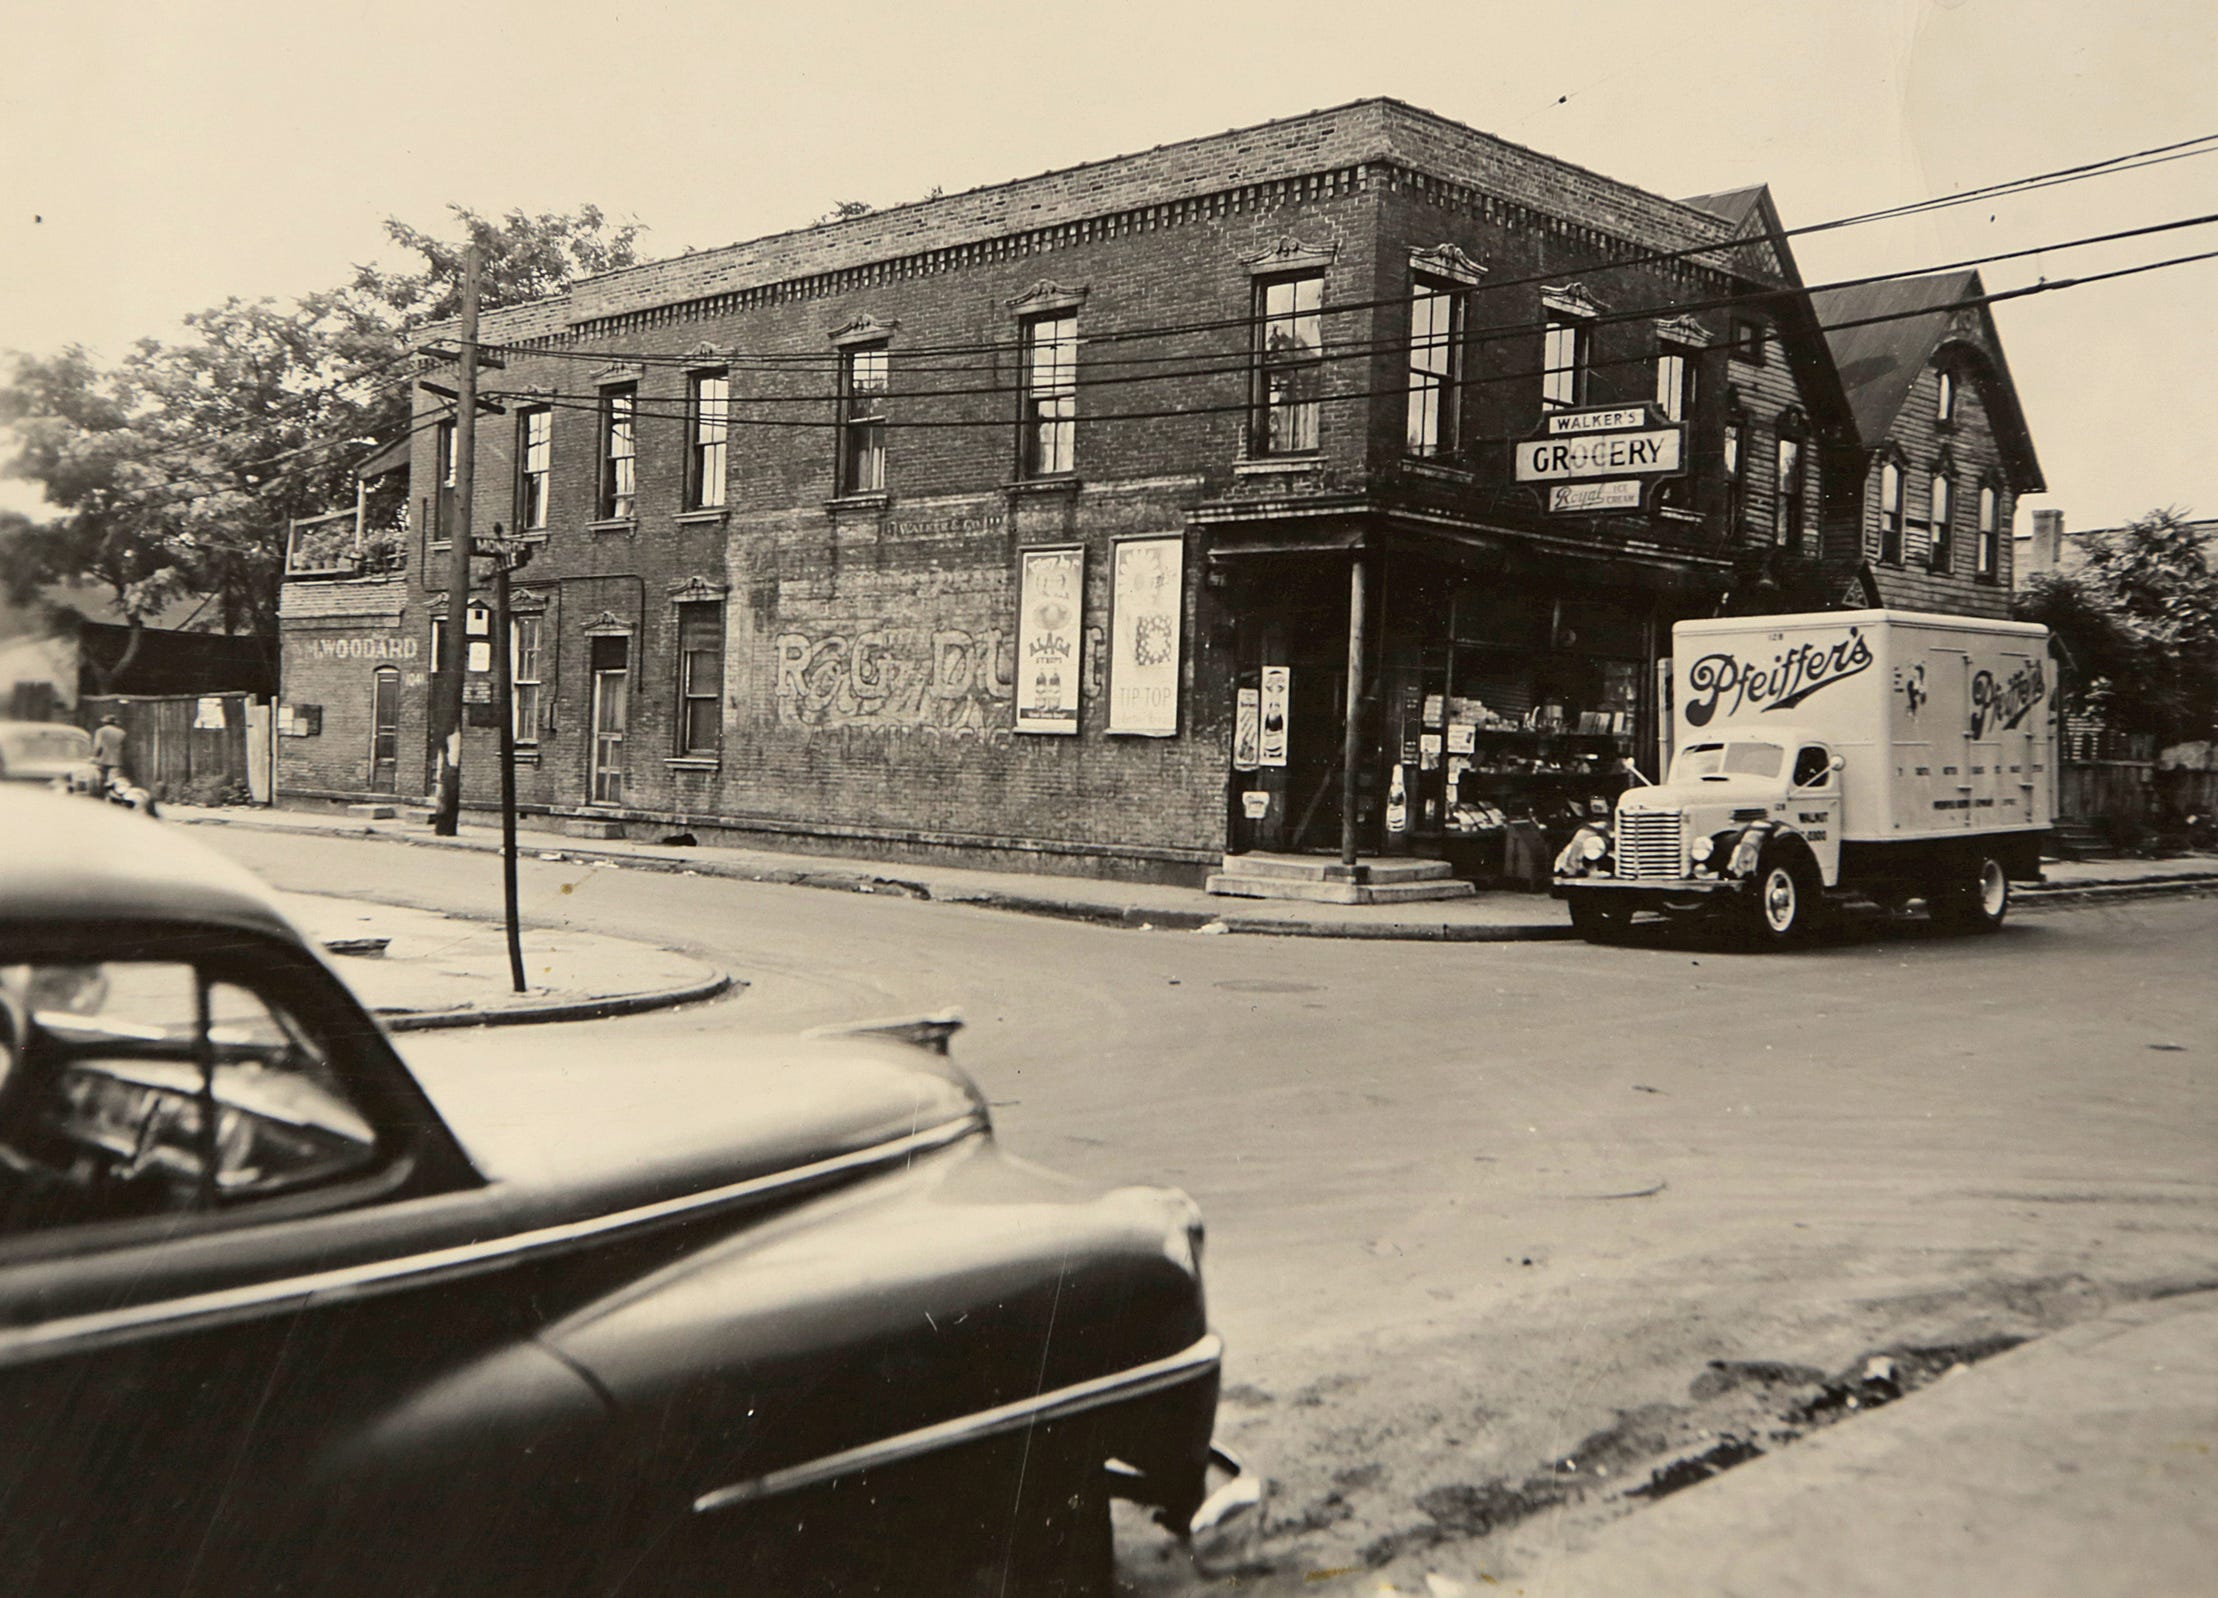 This is a historical photo of Black Bottom before it was torn down in the 1950s to make way for the Chrysler Freeway and the Detroit Medical Center. In this photo a grocery store sits at the corner between 1488 and 1490 Monroe St. and 1041 Riopielle St. on September 1, 1949 in Black Bottom, the ancestral neighborhood of many metro Detroit African Americans. Courtesy of the Burton Historical Collection